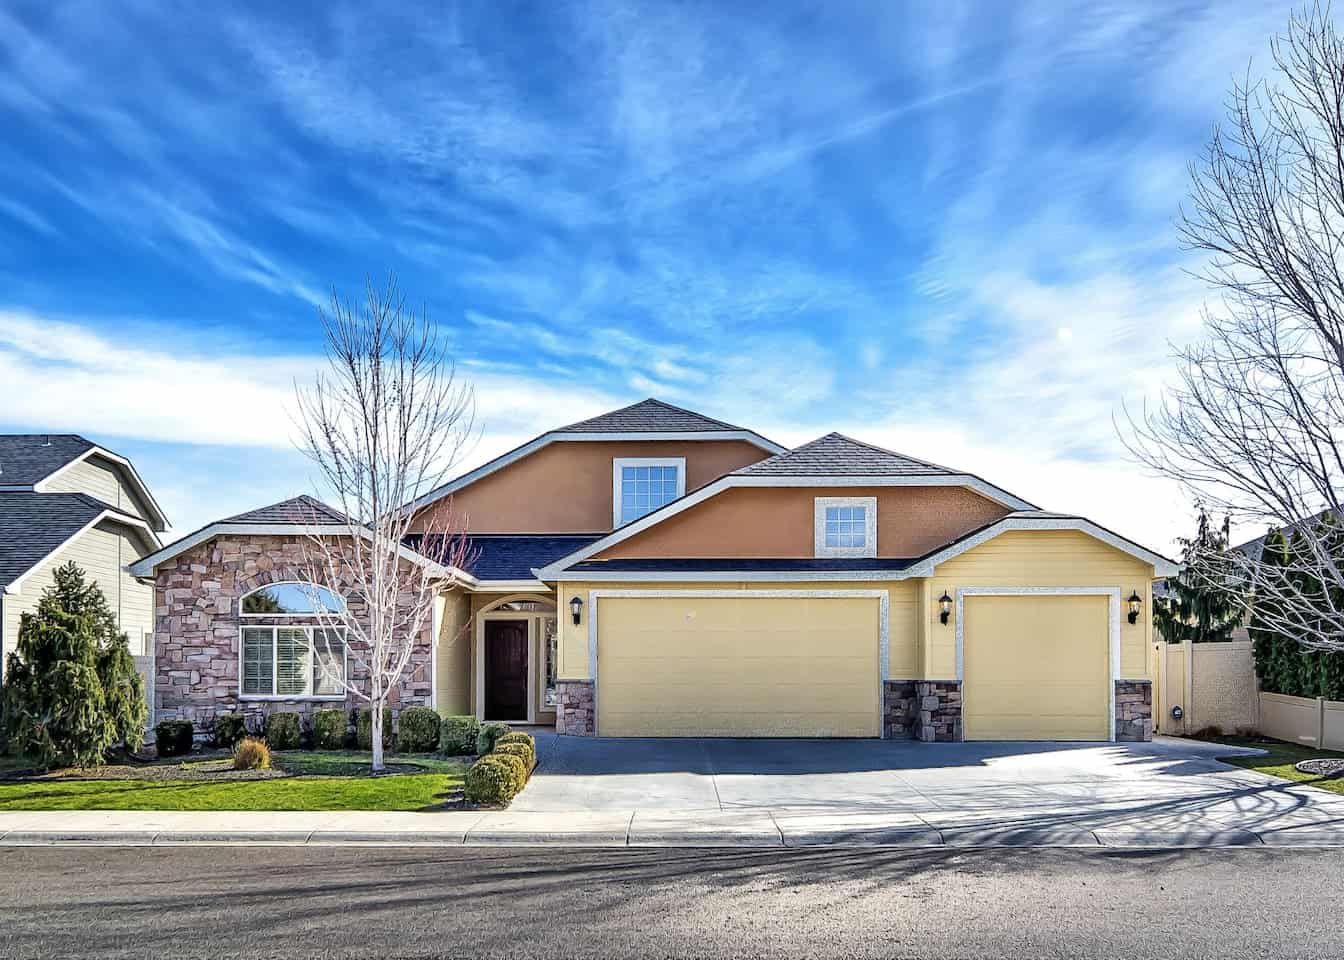 Check out this fantastic budget Airbnb near Boise